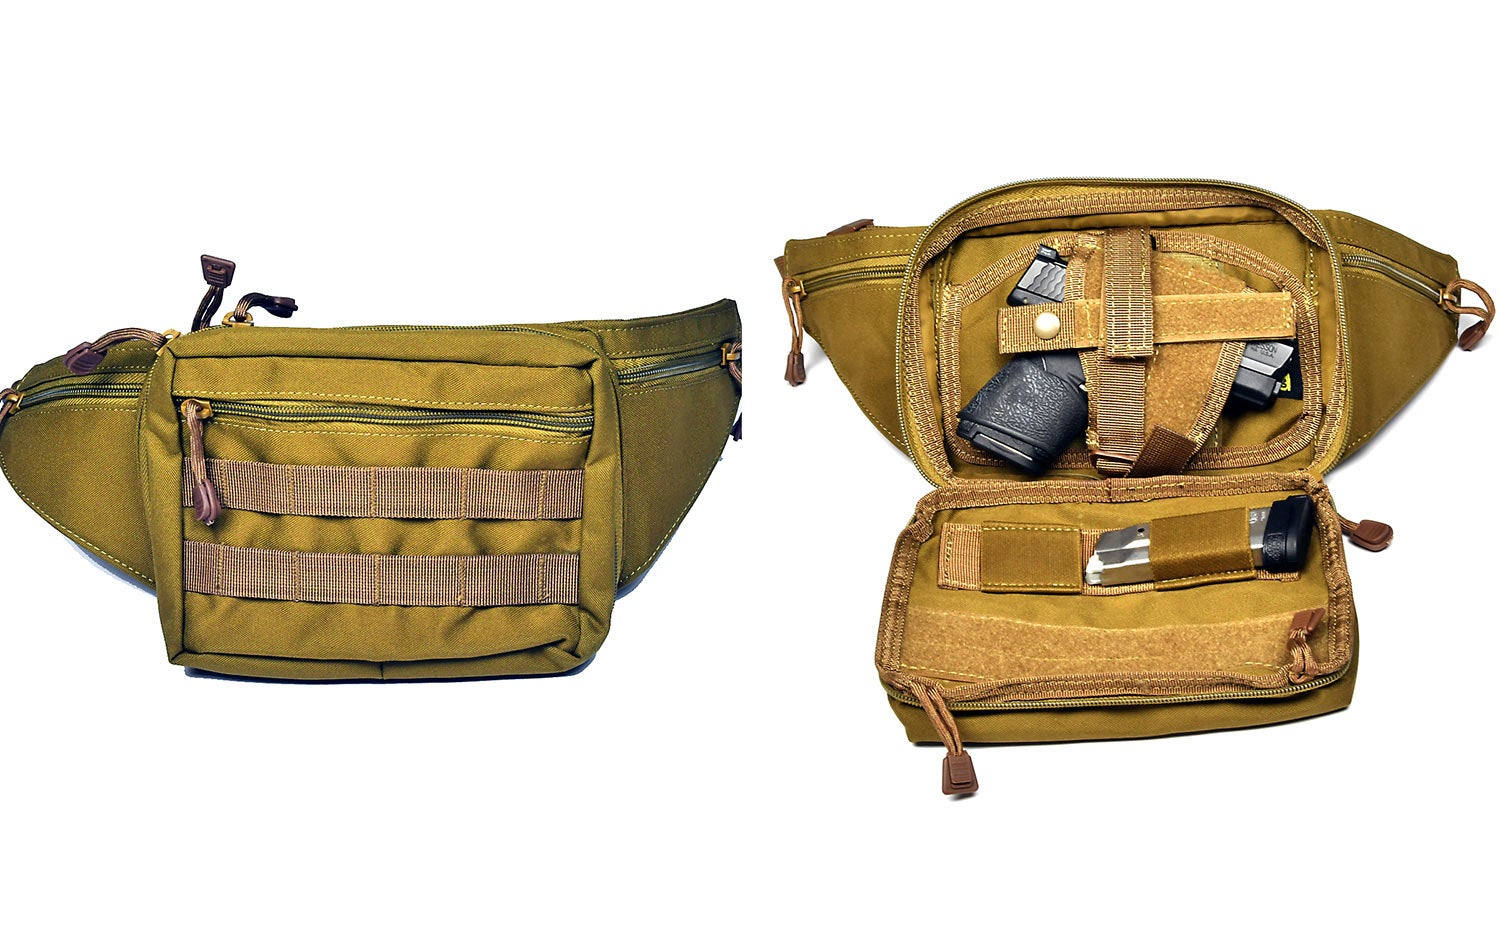 A tan waist pack on a white background.